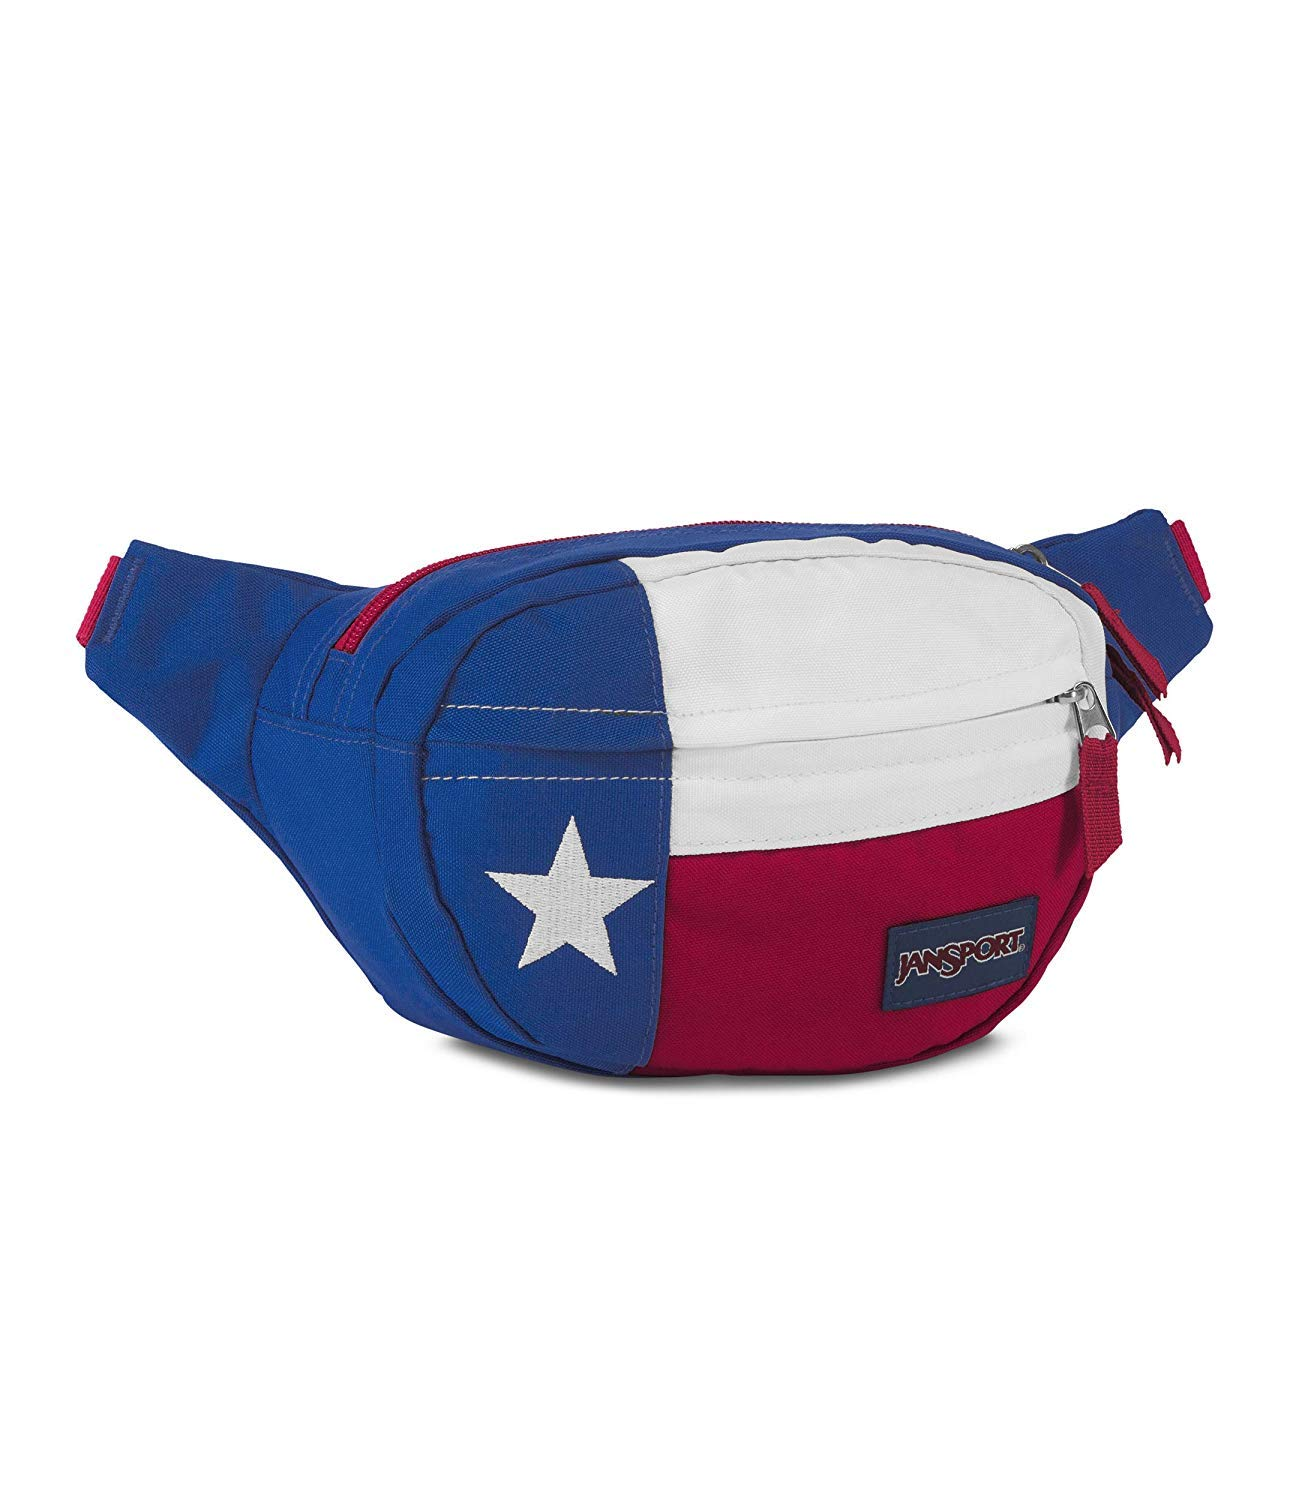 JanSport Fifth Ave Fanny Pack (Blue/Red/White-Lone Star)